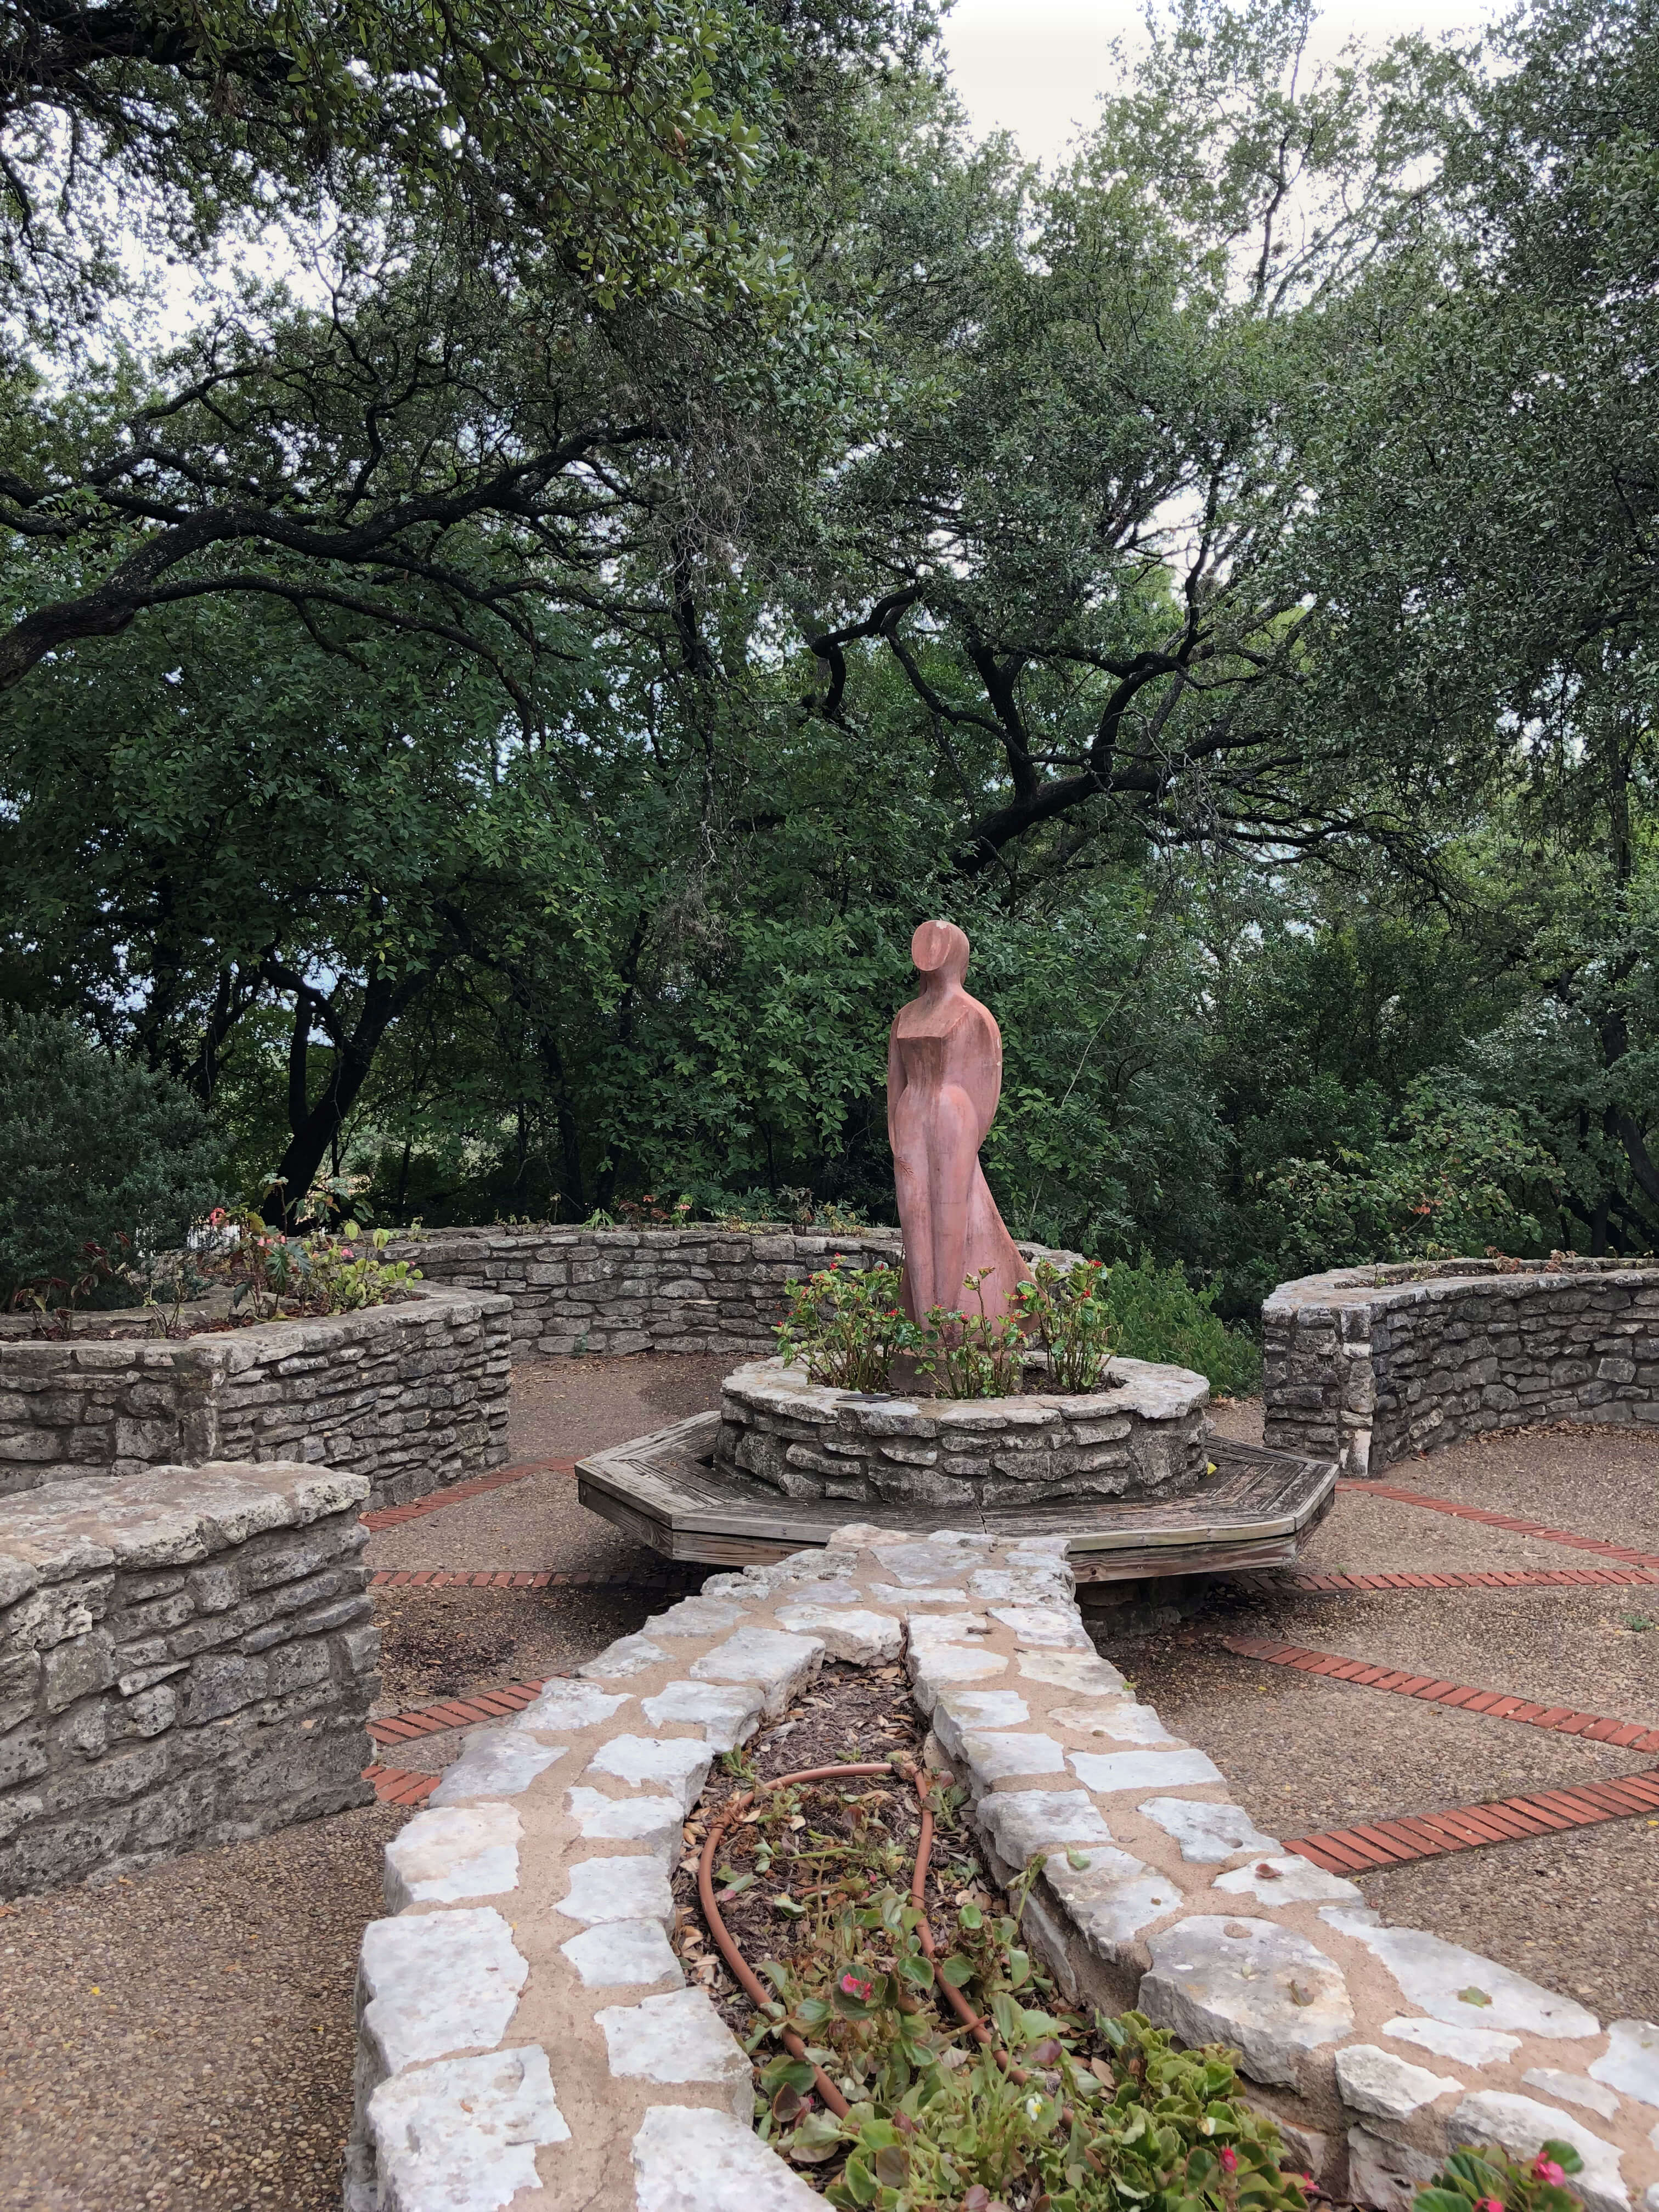 Statue of a woman at Zilker Botanical Garden in Austin, Texas